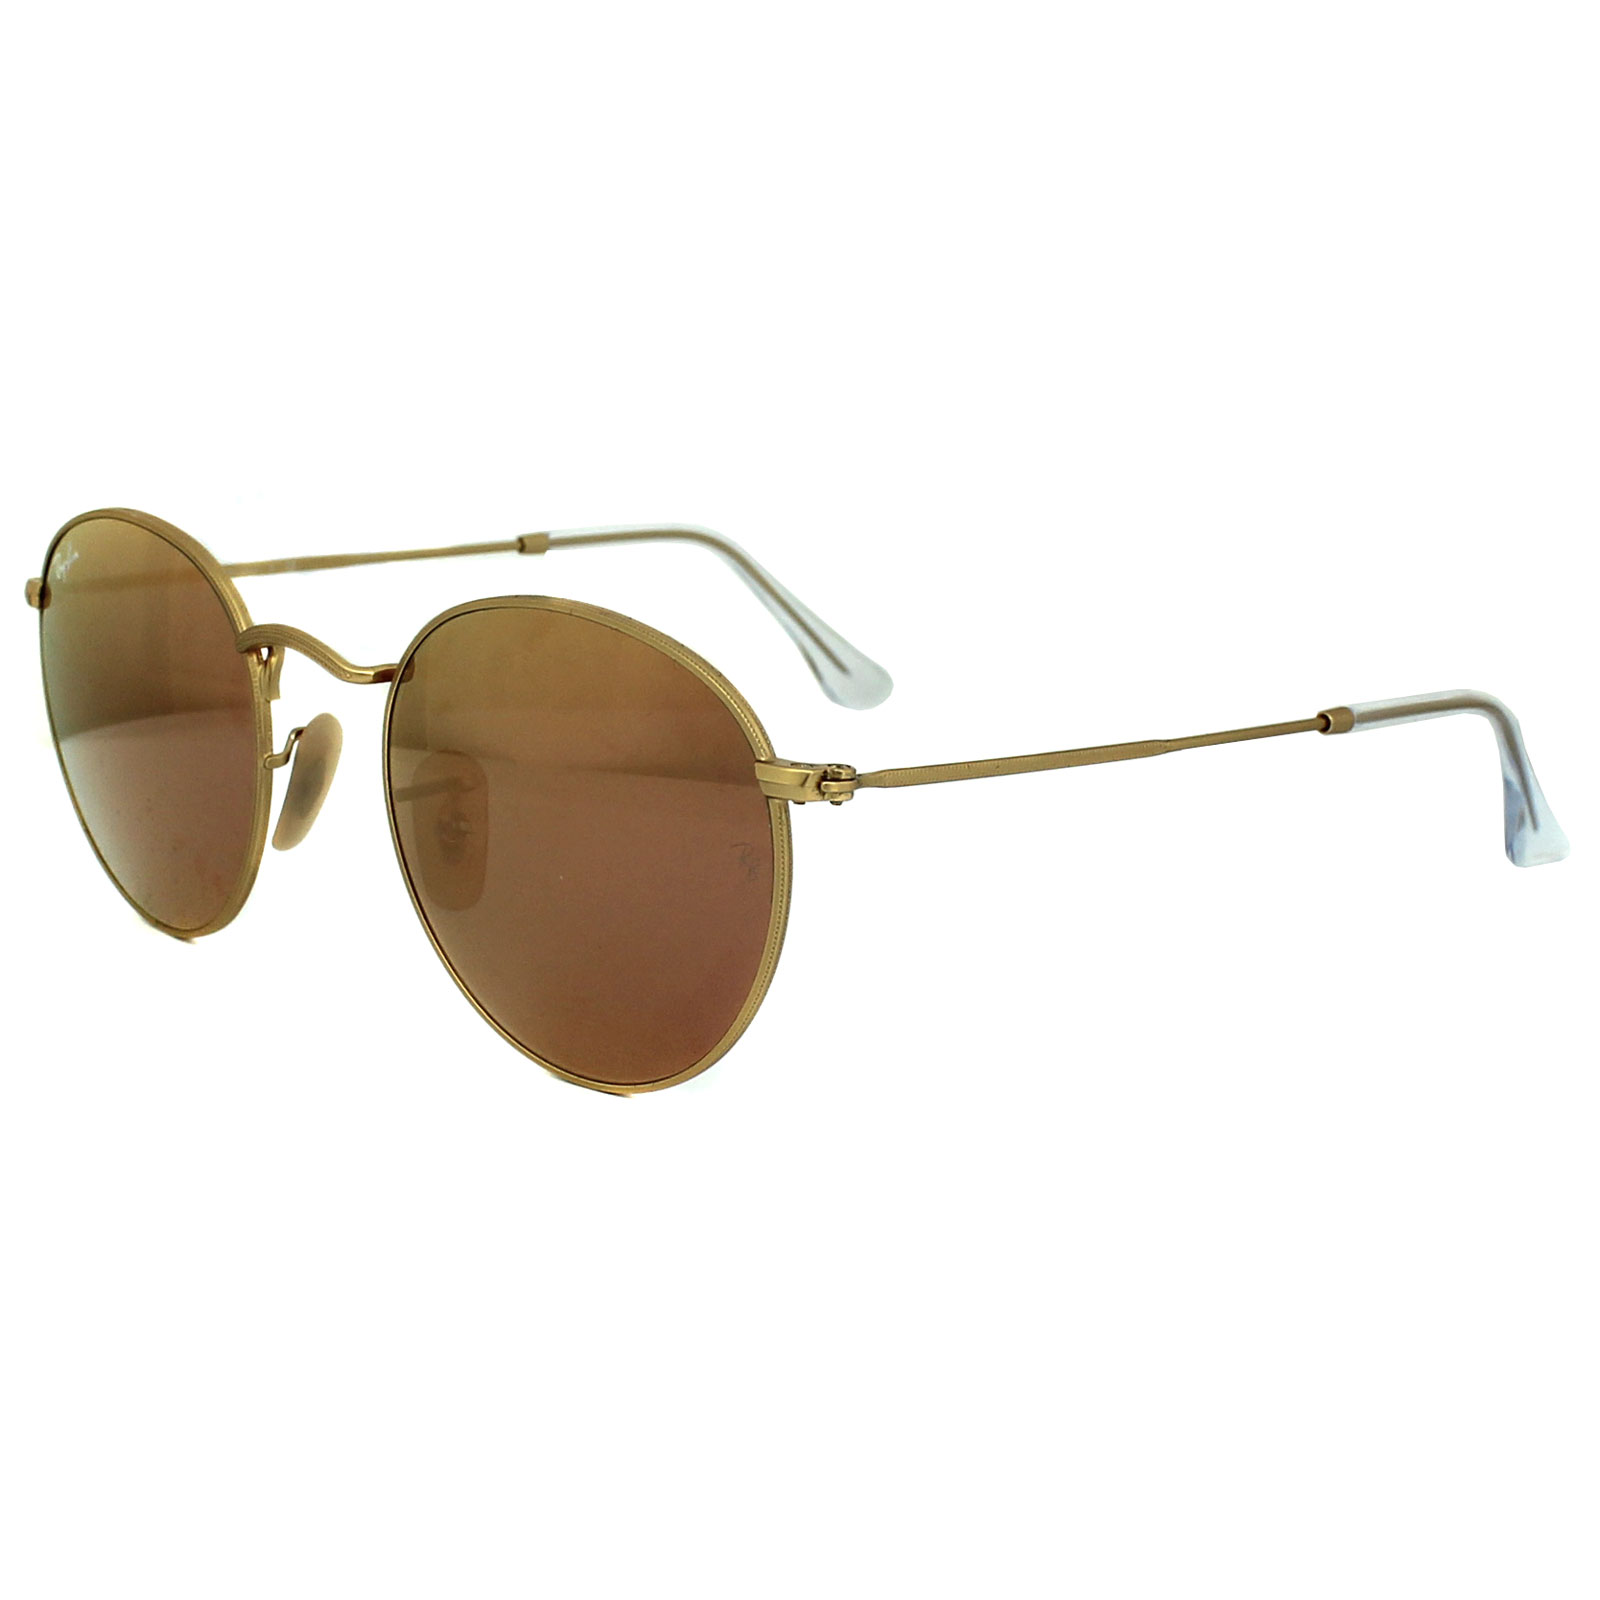 Sentinel Ray-Ban Sunglasses Round Metal 3447 112 Z2 Gold Copper Flash  Mirror M 559205fd28